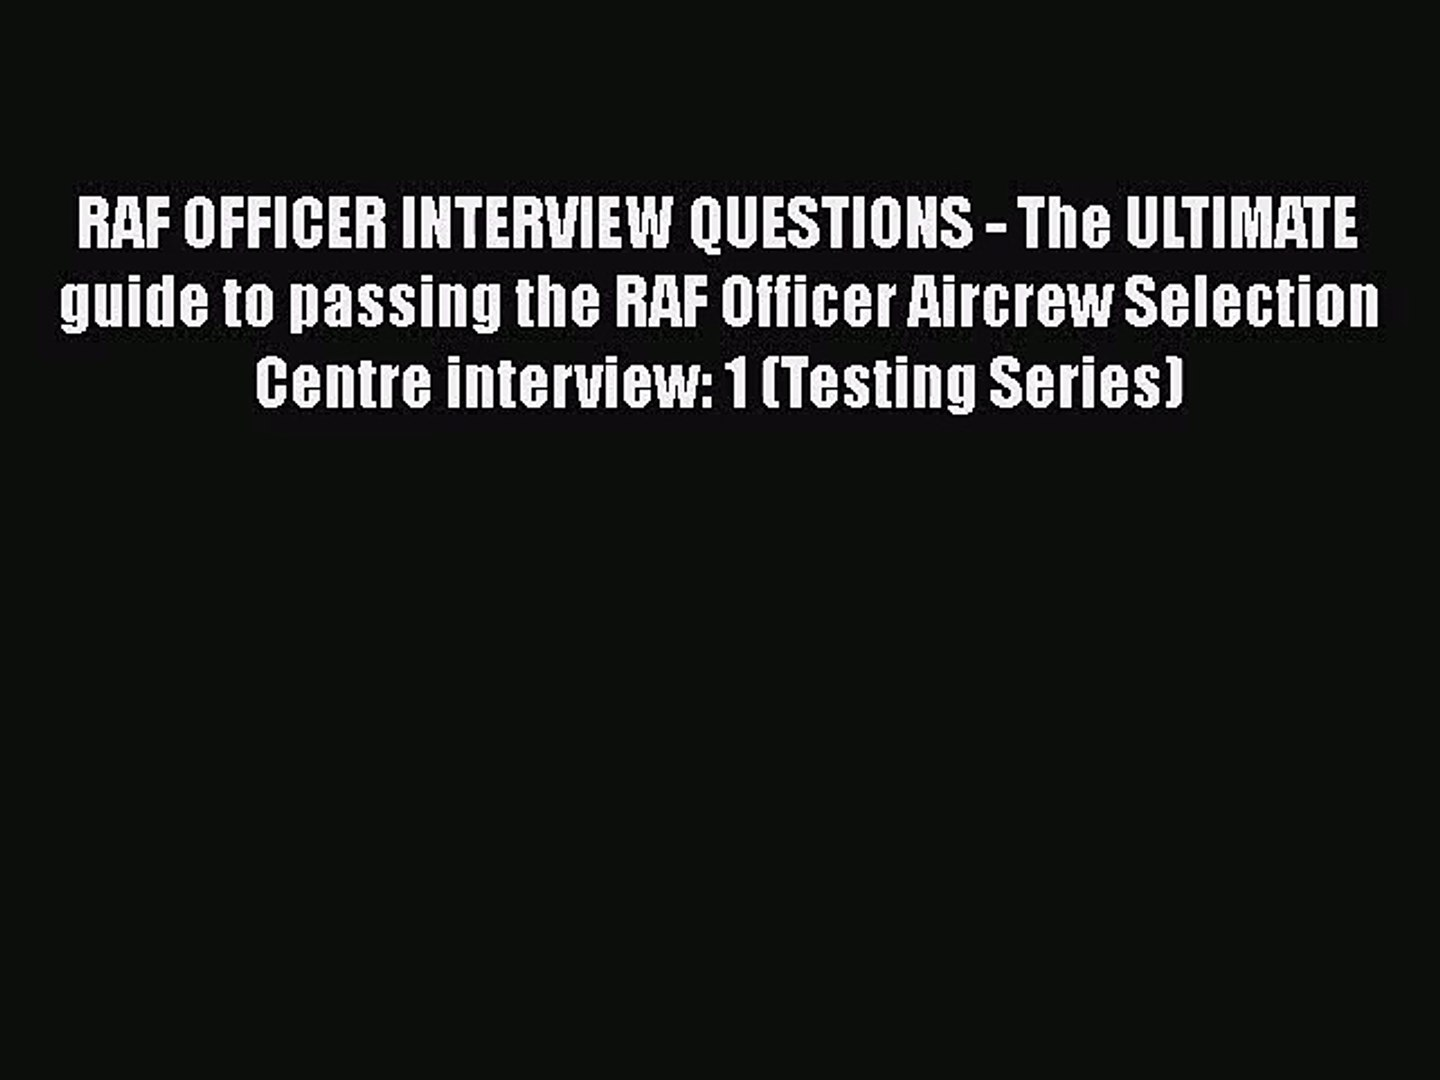 [PDF Download] RAF OFFICER INTERVIEW QUESTIONS - The ULTIMATE guide to passing the RAF Officer